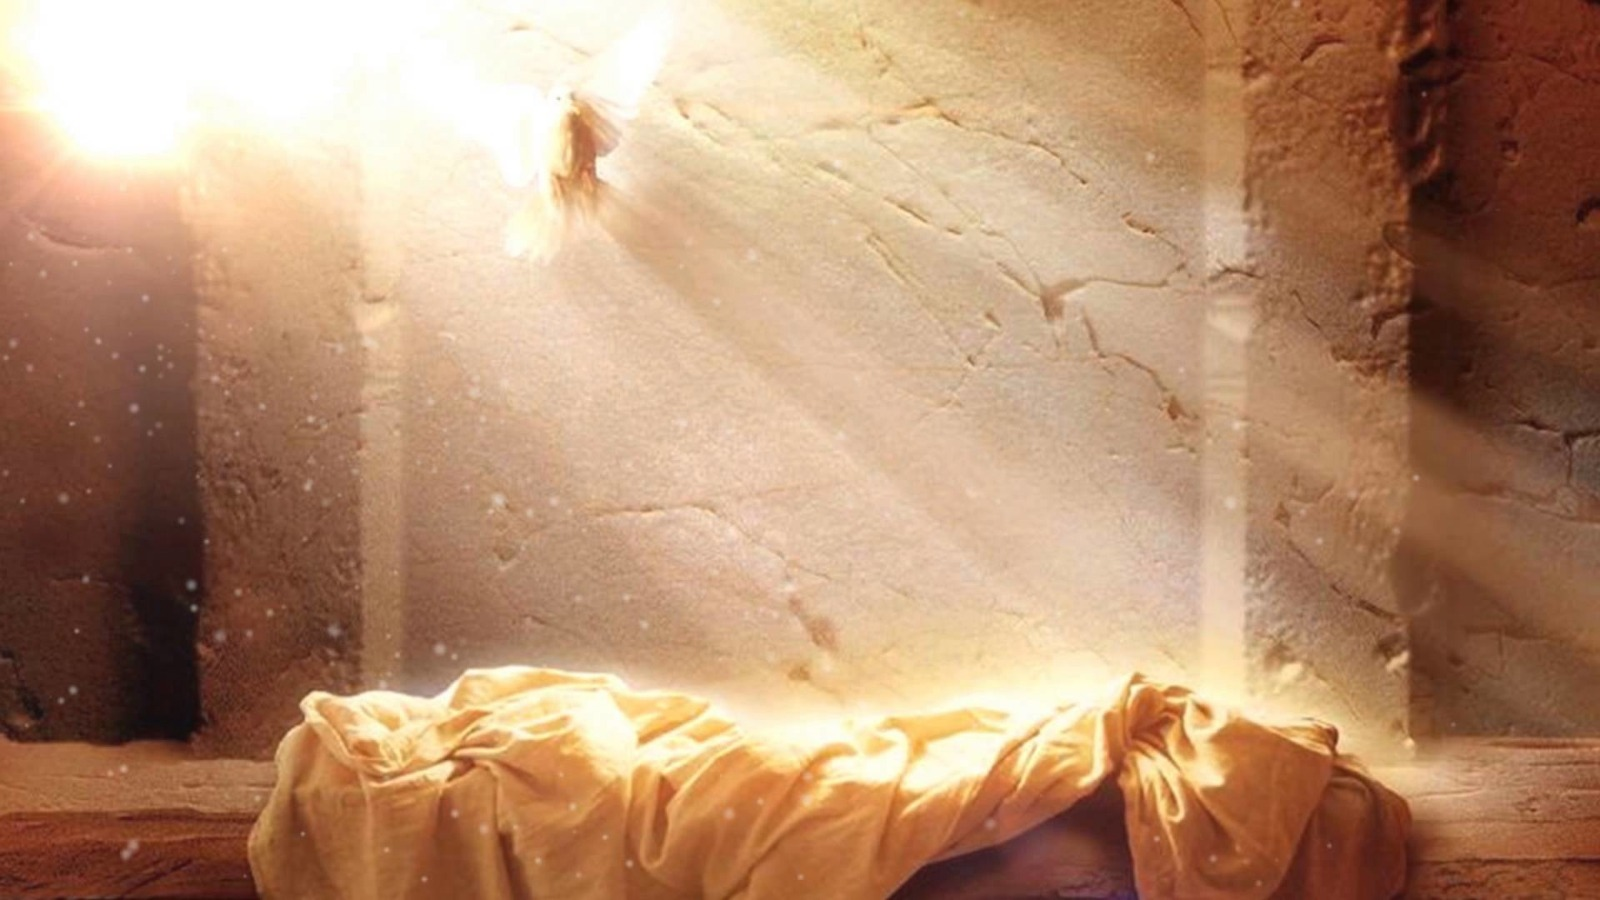 Are you convinced about Christ's Resurrection?